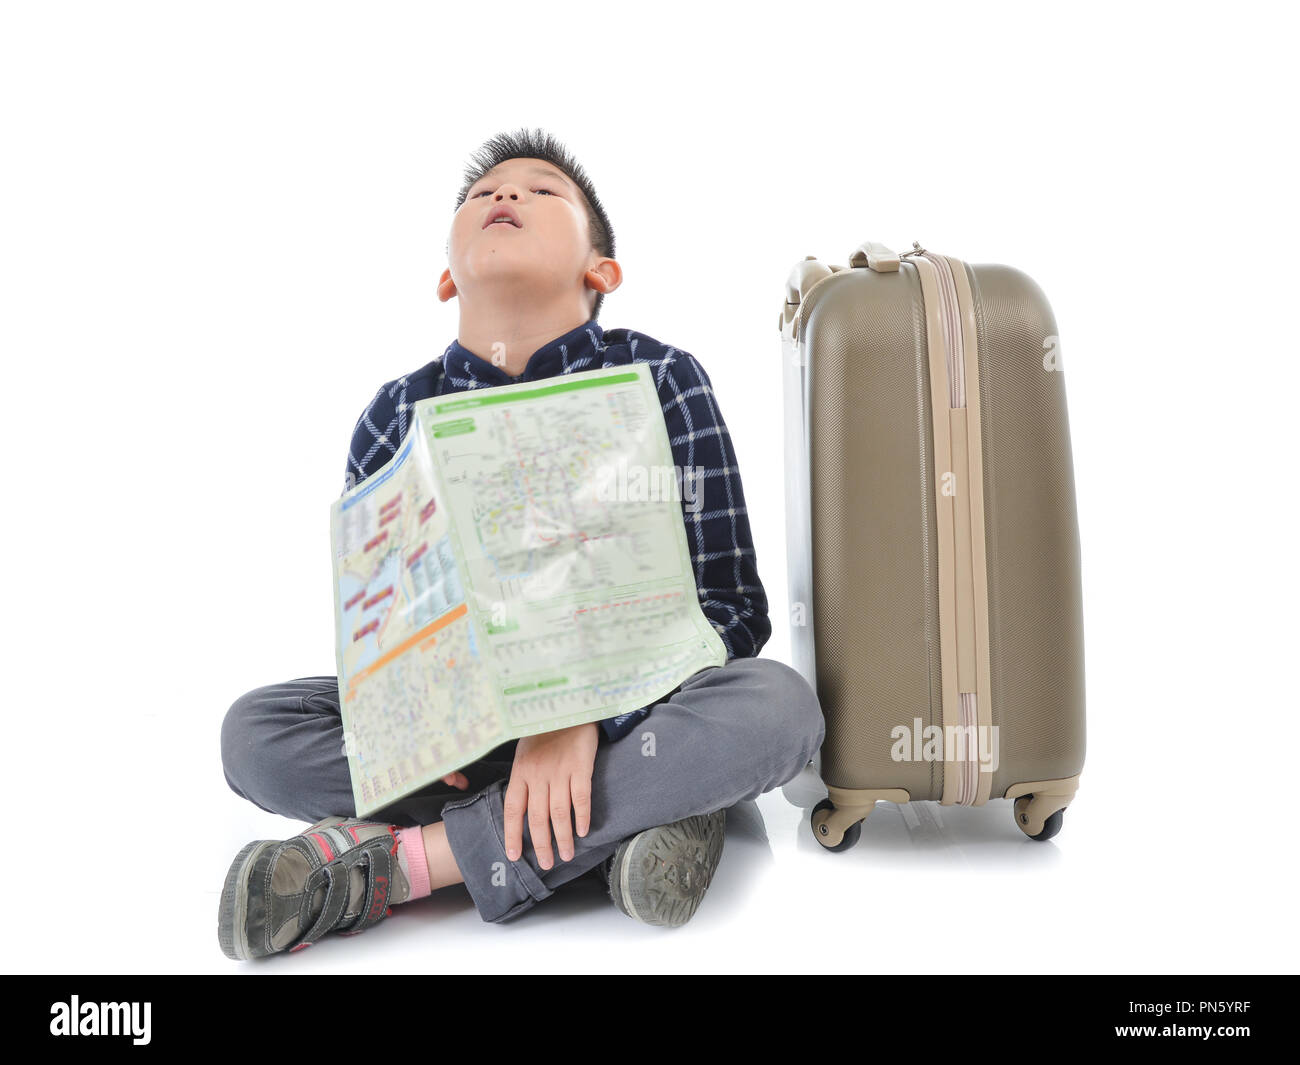 Asian boy holding map and sitting with luggage, isolated on white. - Stock Image